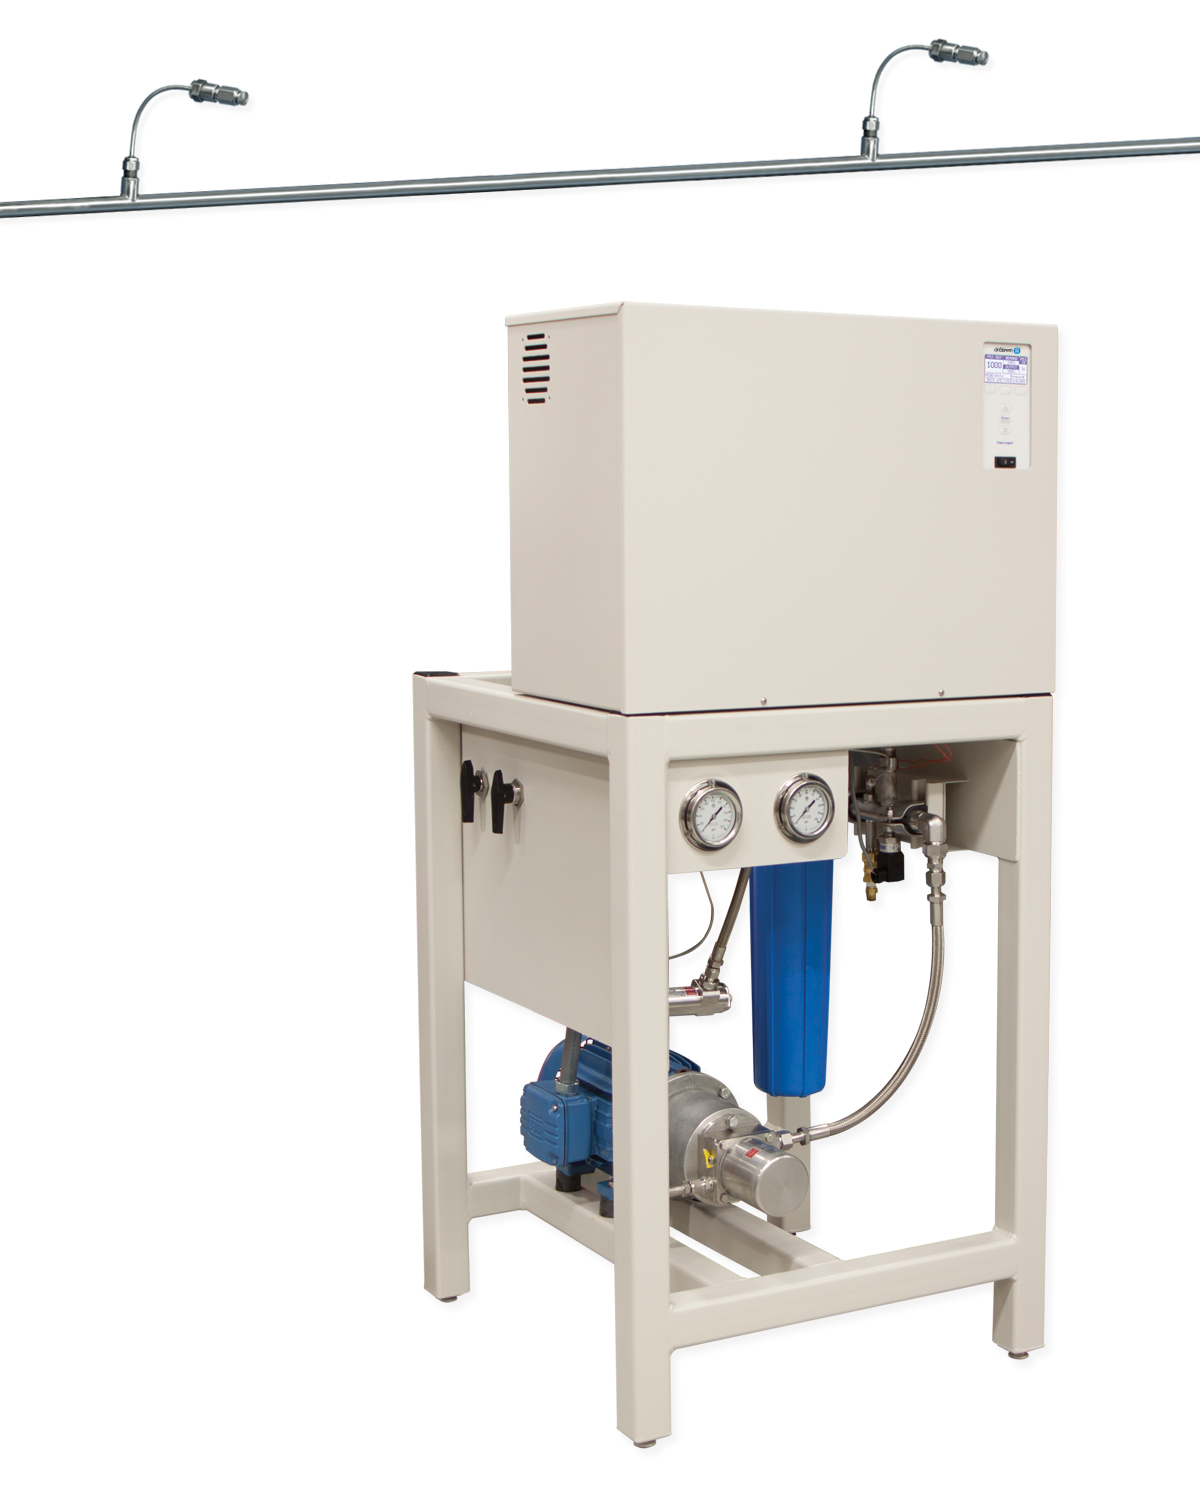 High Pressure Spray Booth : Dristeem high pressure system controls humidity and heat